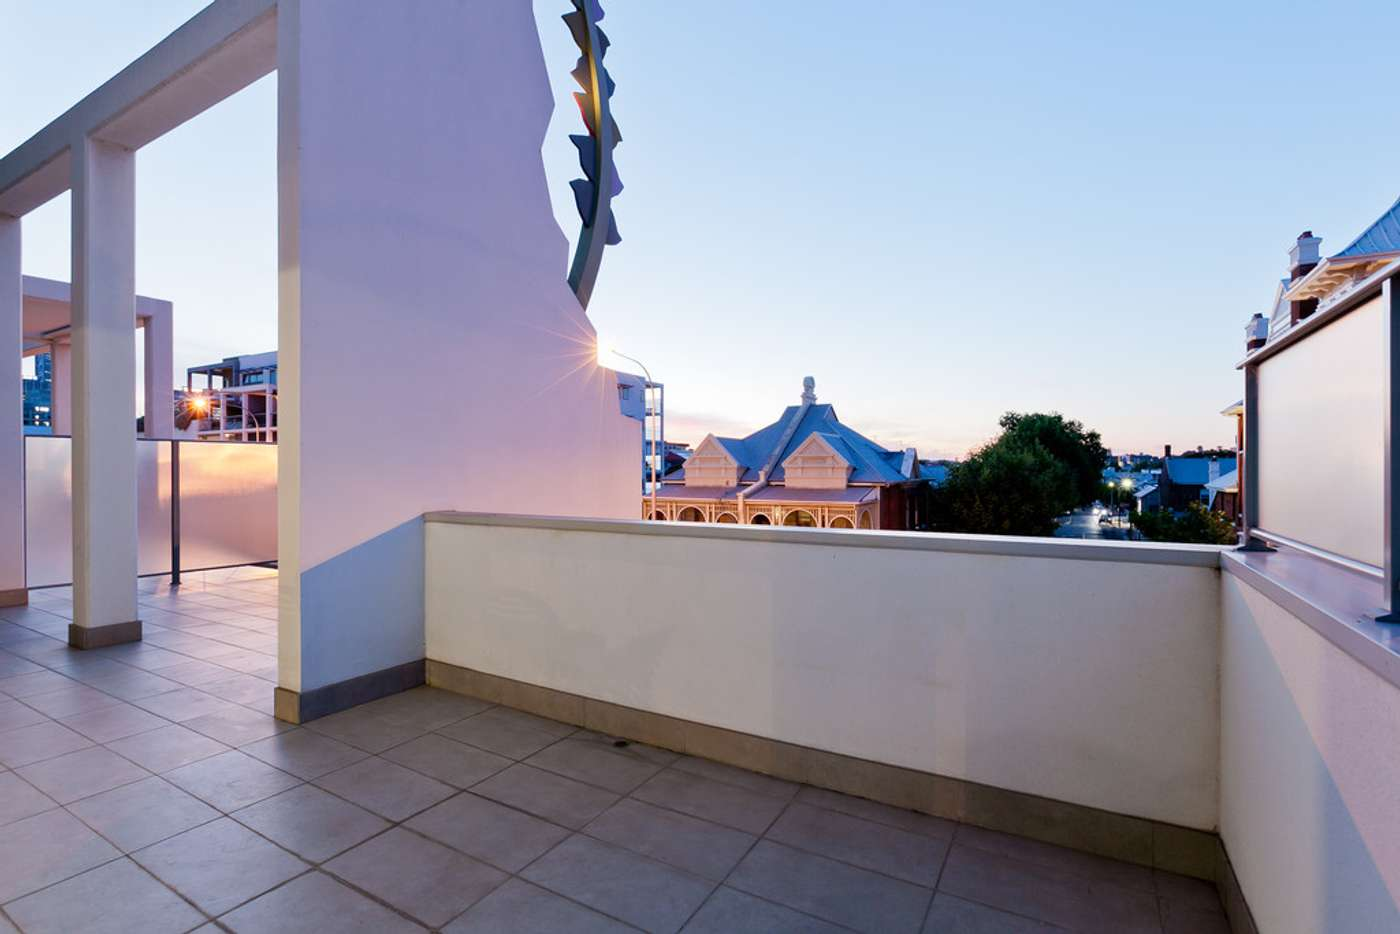 Main view of Homely apartment listing, 1/226 Beaufort Street, Perth WA 6000